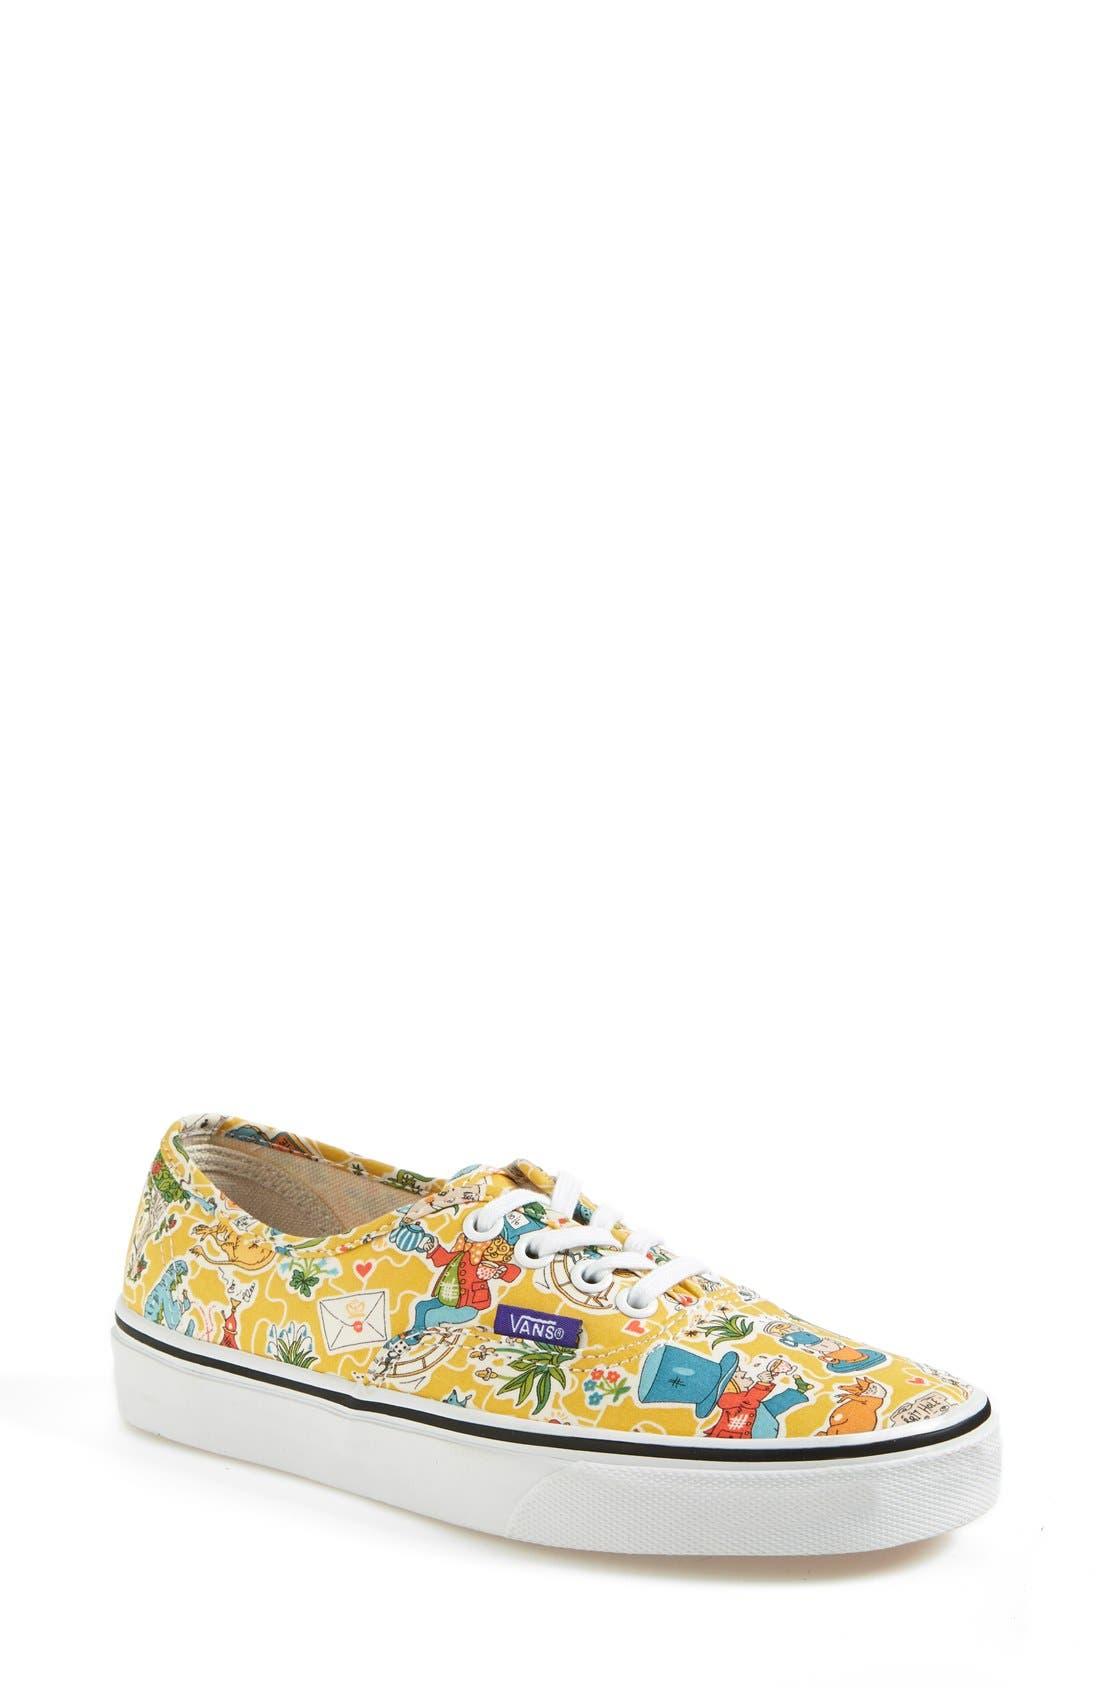 Main Image - Vans 'Authentic - Liberty Era' Sneaker (Women)